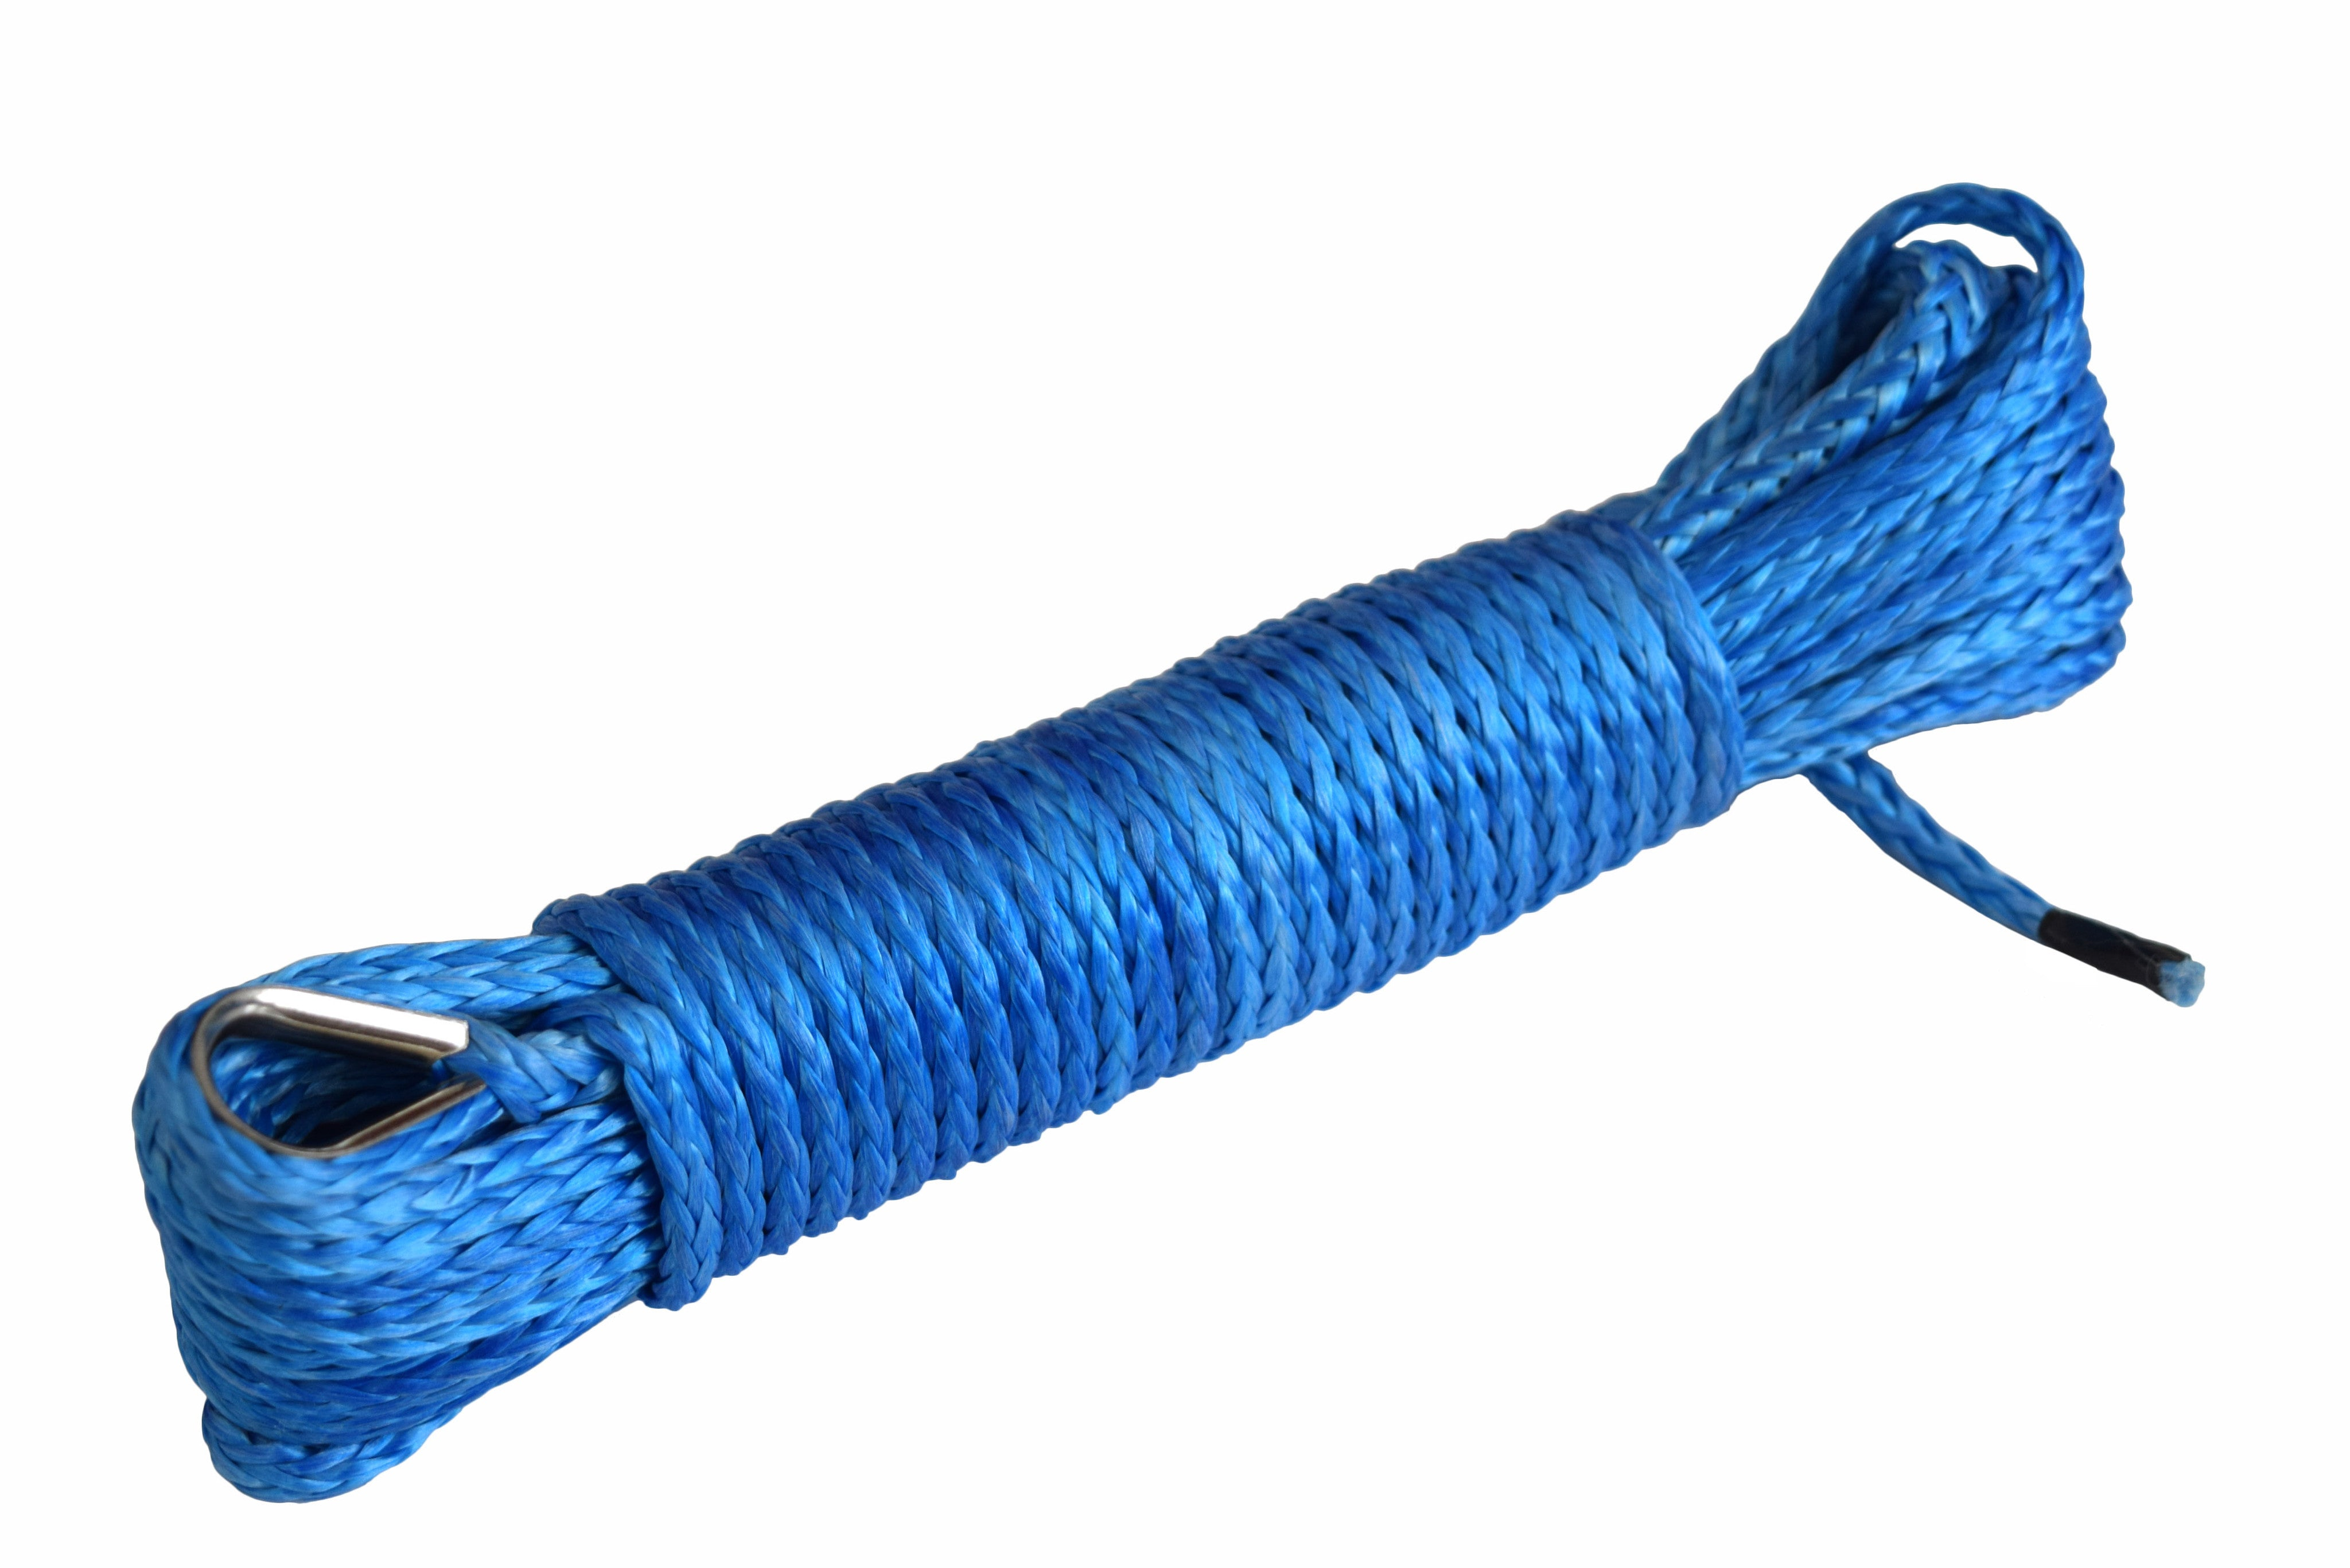 QIQU Blue 50 feet 3/16 inch ATV UTV synthetic winch cable rope line with thimble one end